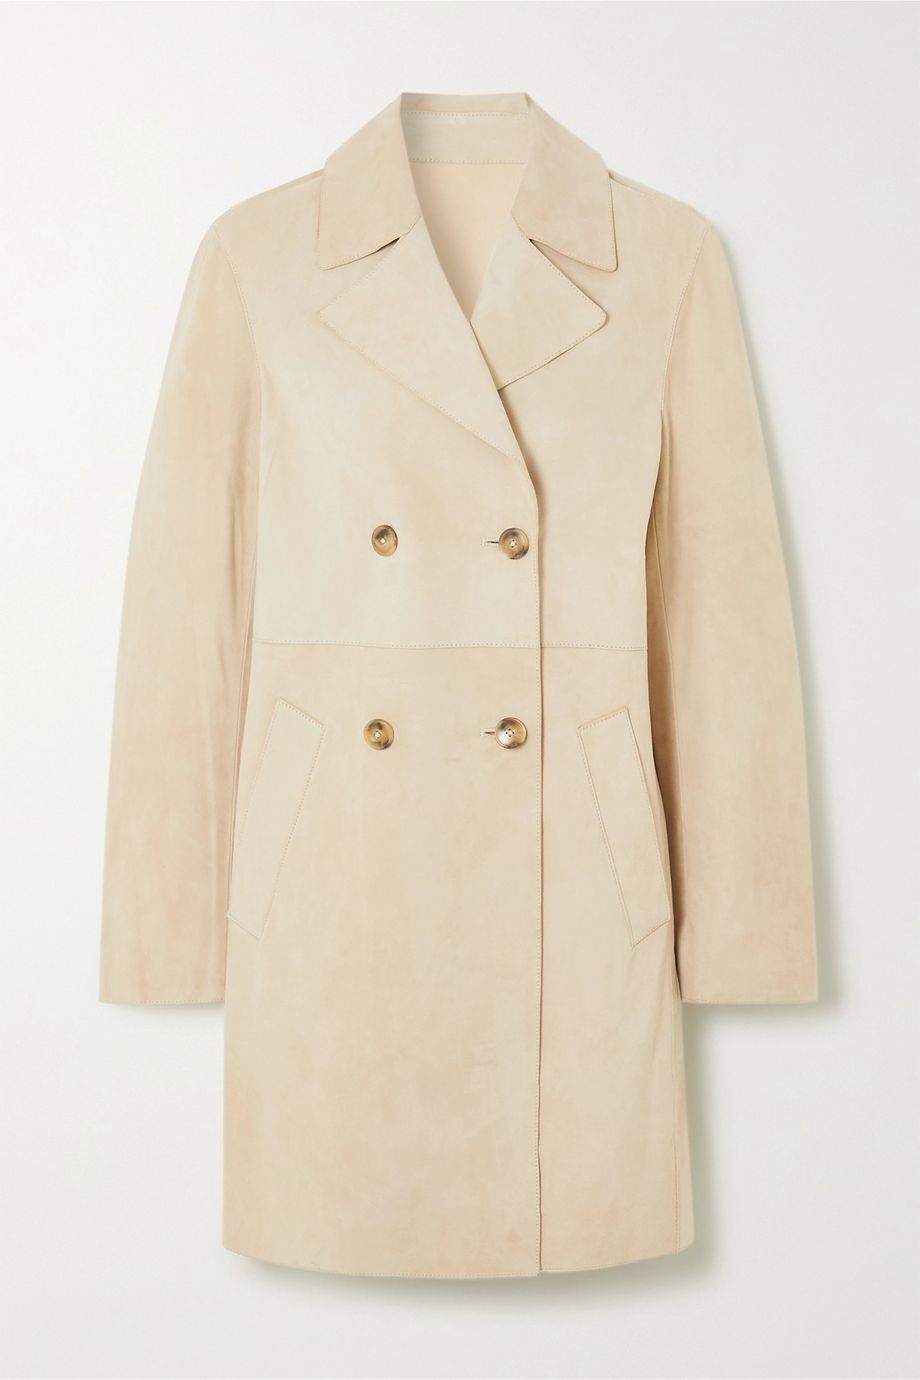 Yves Salomon Leah double-breasted suede coat